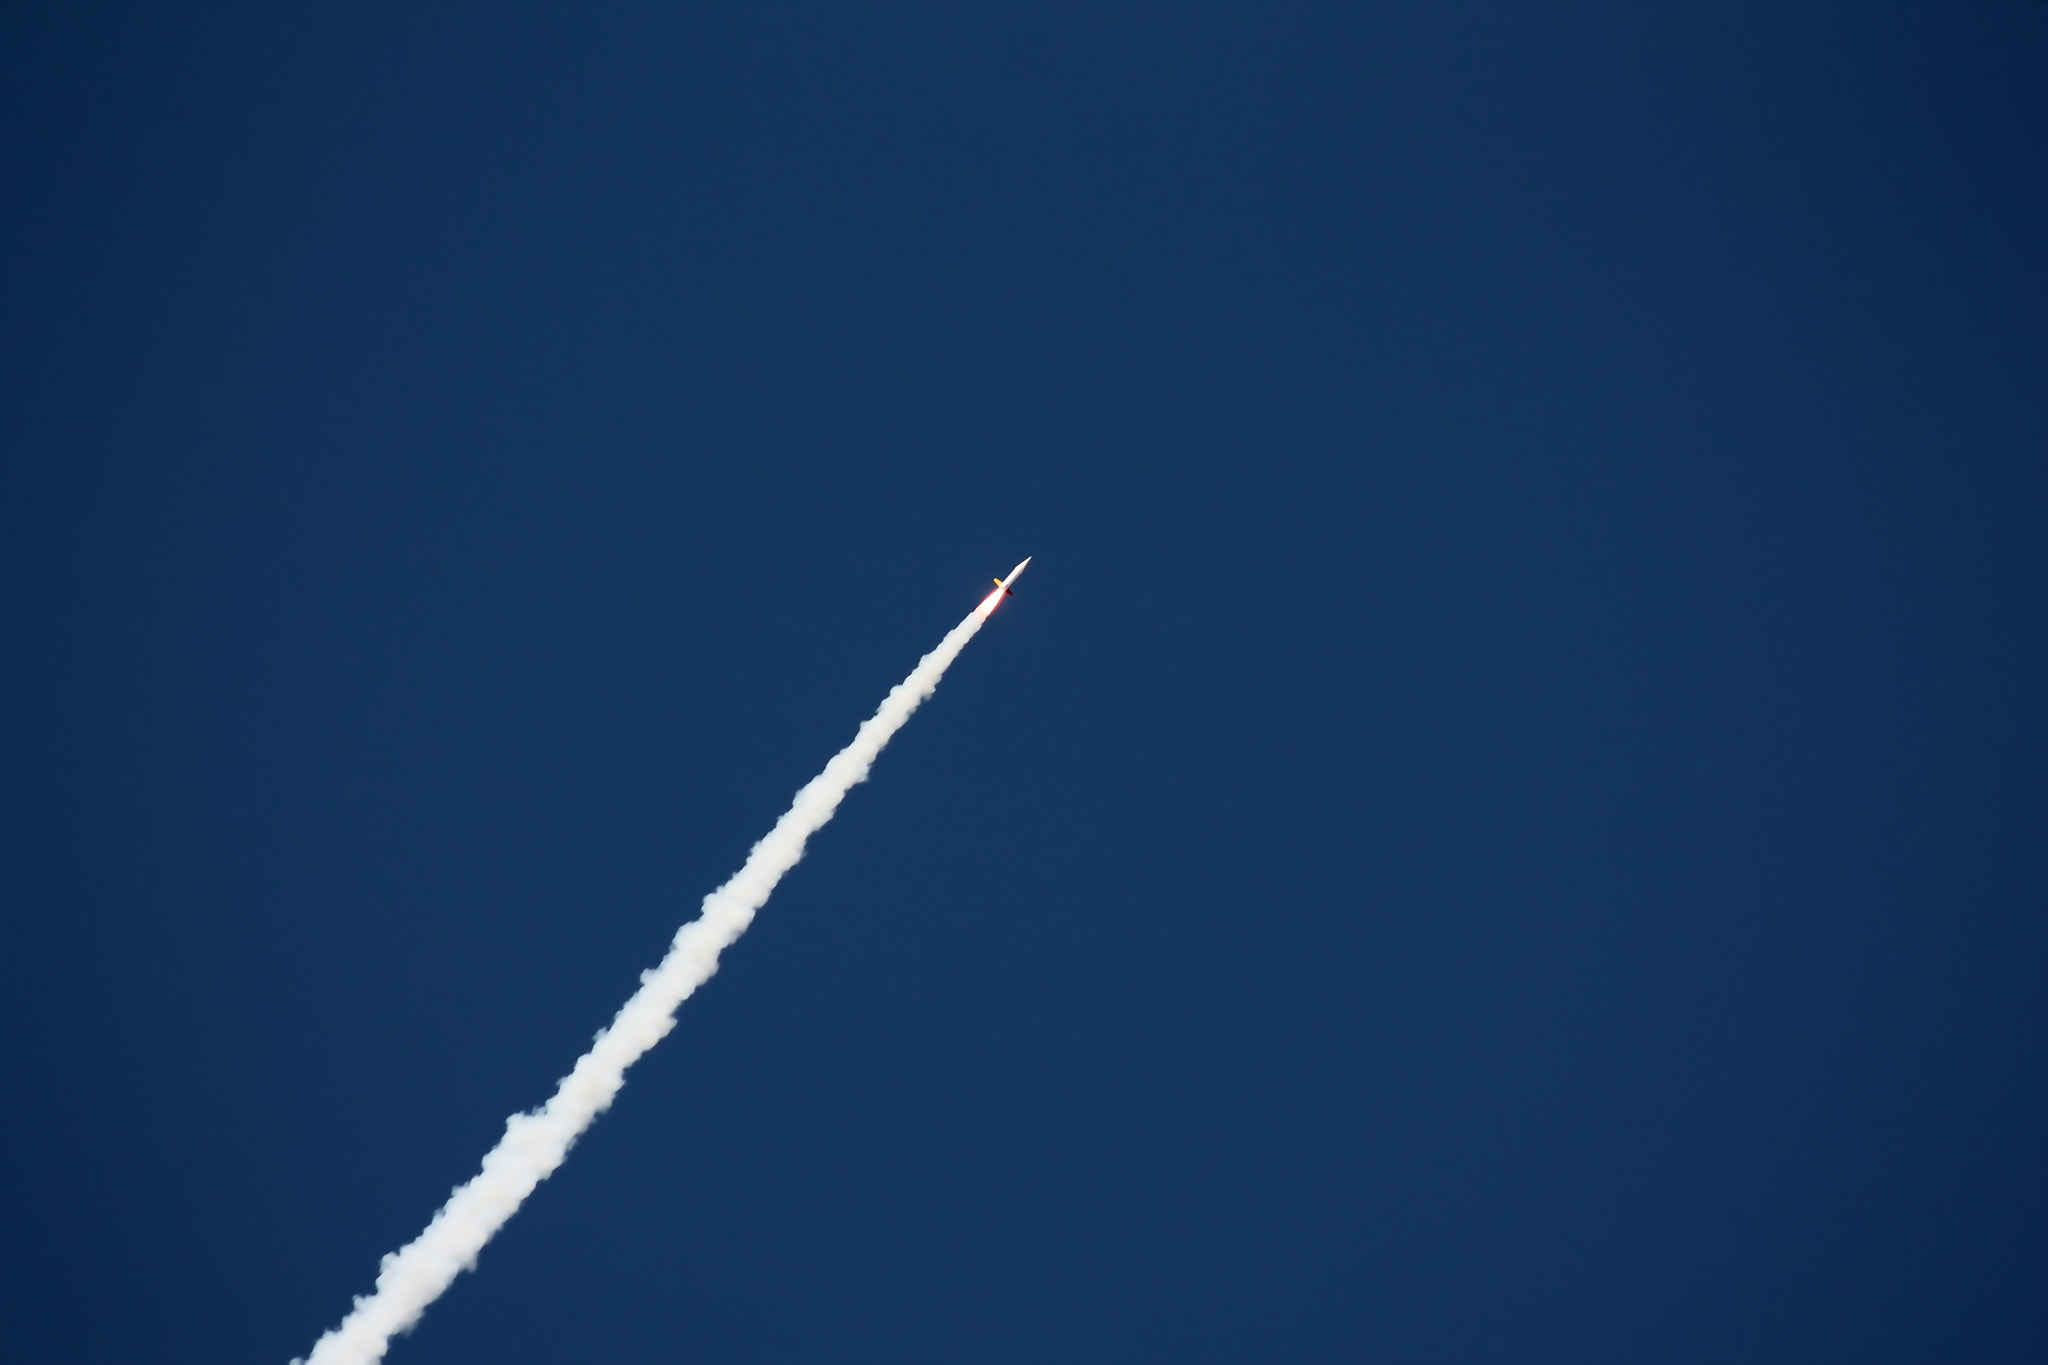 Photograph White Rocket Flightpath by Christopher Sardegna on 500px